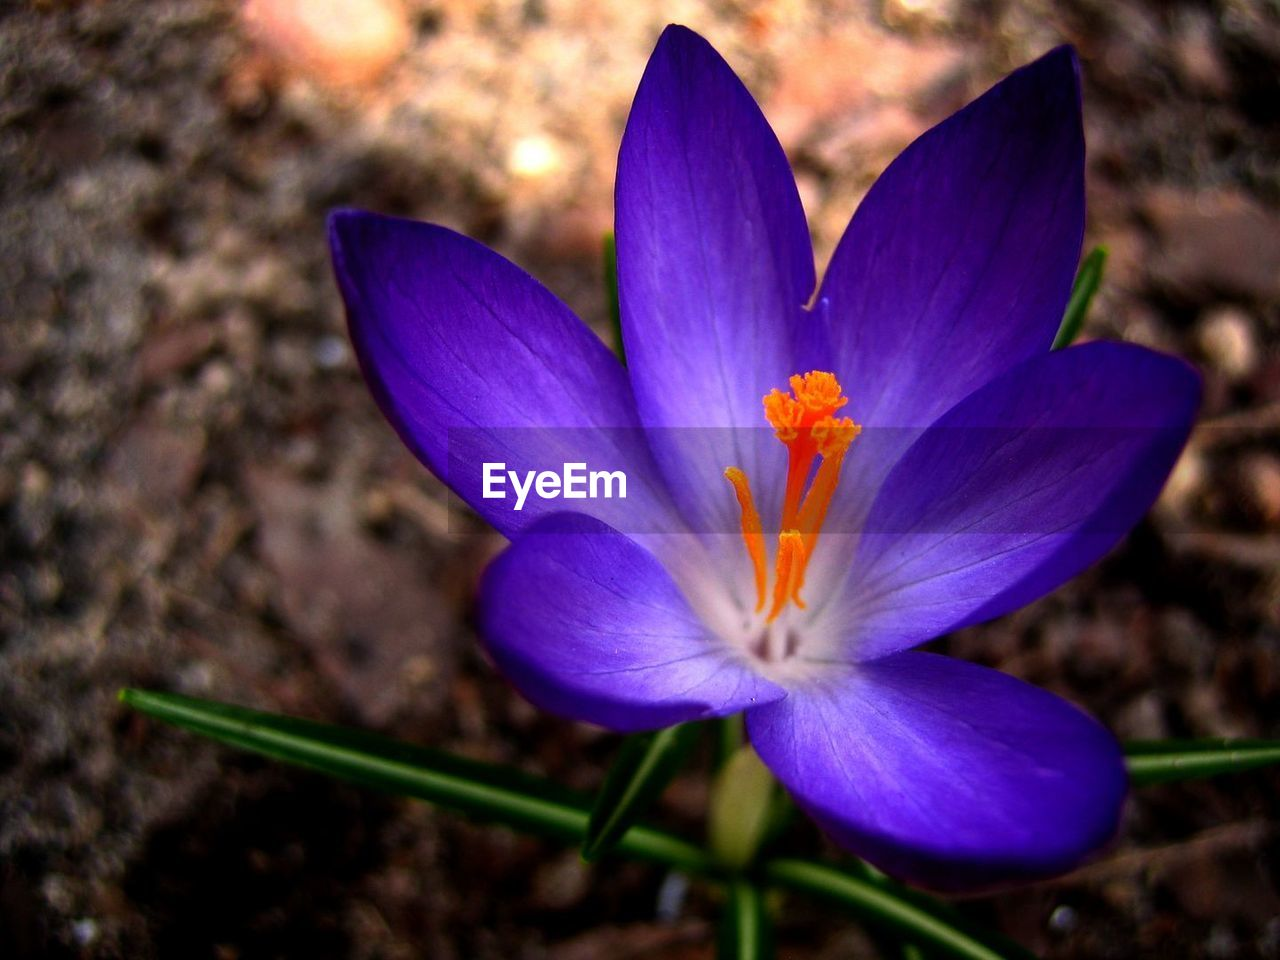 flower, petal, nature, flower head, beauty in nature, fragility, no people, close-up, freshness, plant, growth, outdoors, day, blooming, crocus